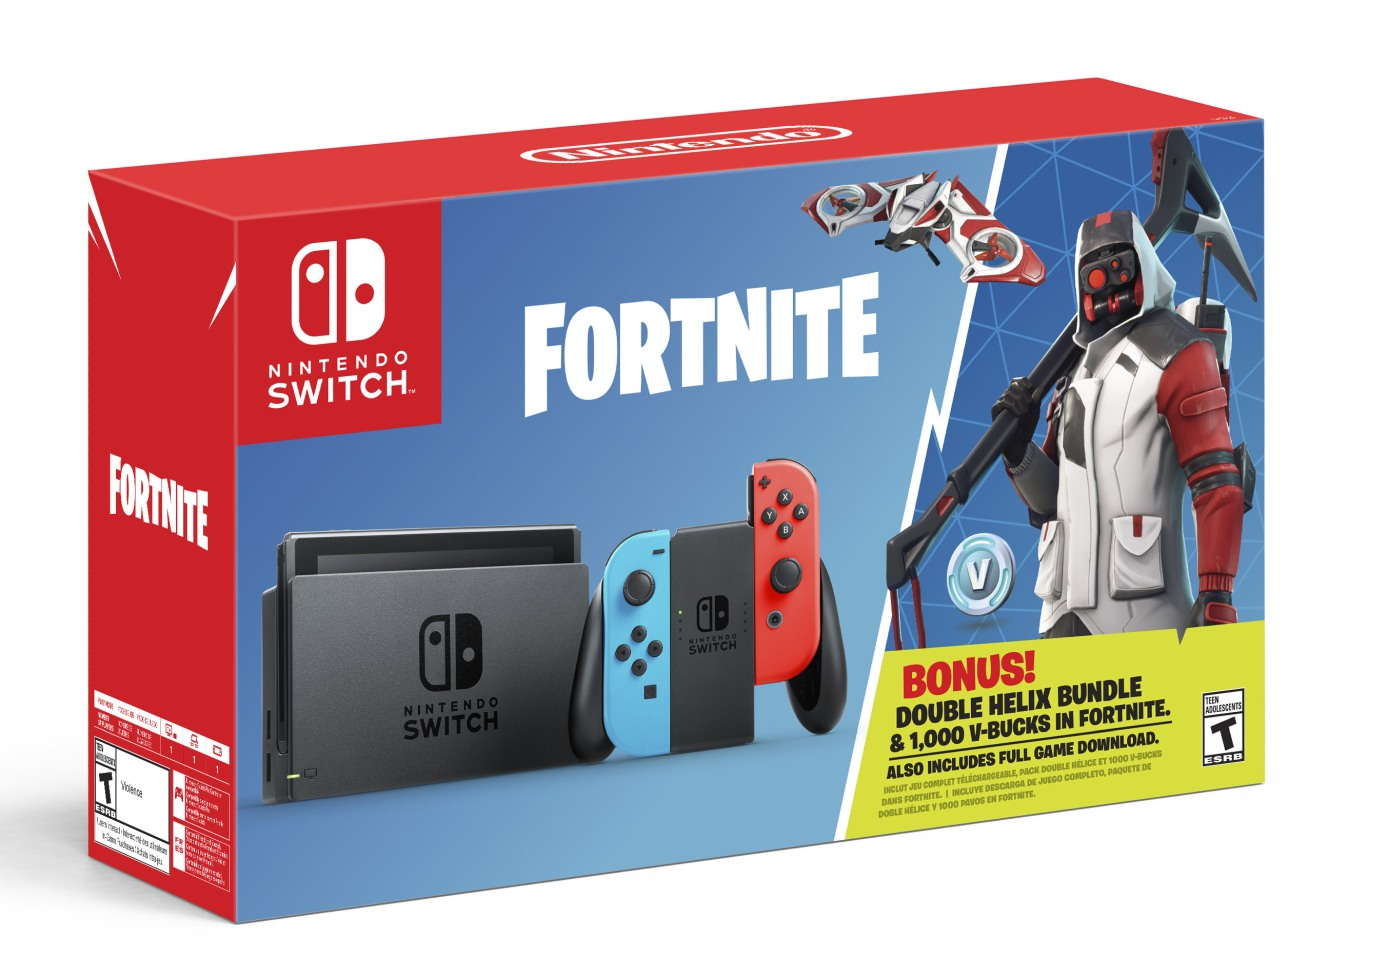 Fortnite\' Switch bundle arrives October 5th with in-game perks